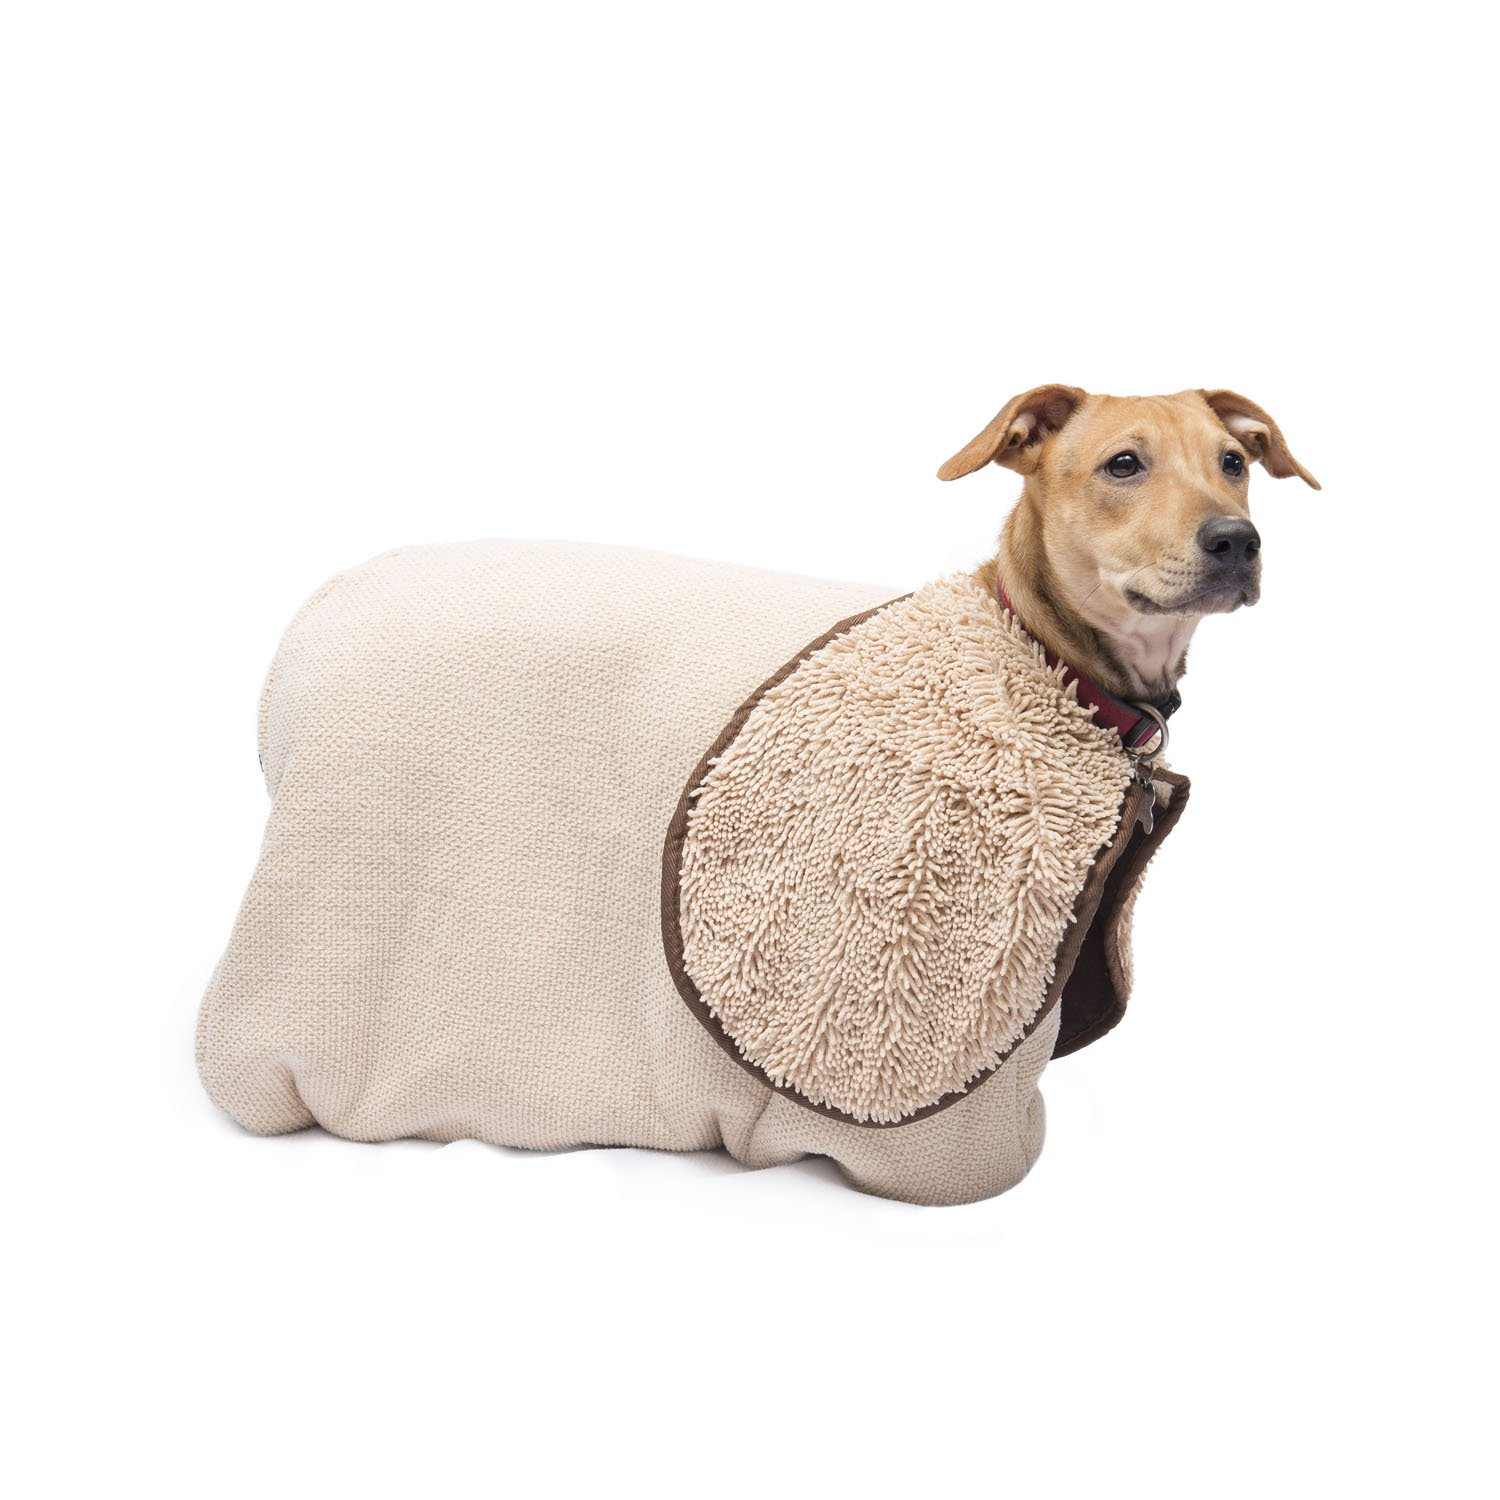 Dog Gone Smart Pet Products Zip and Dri Drier